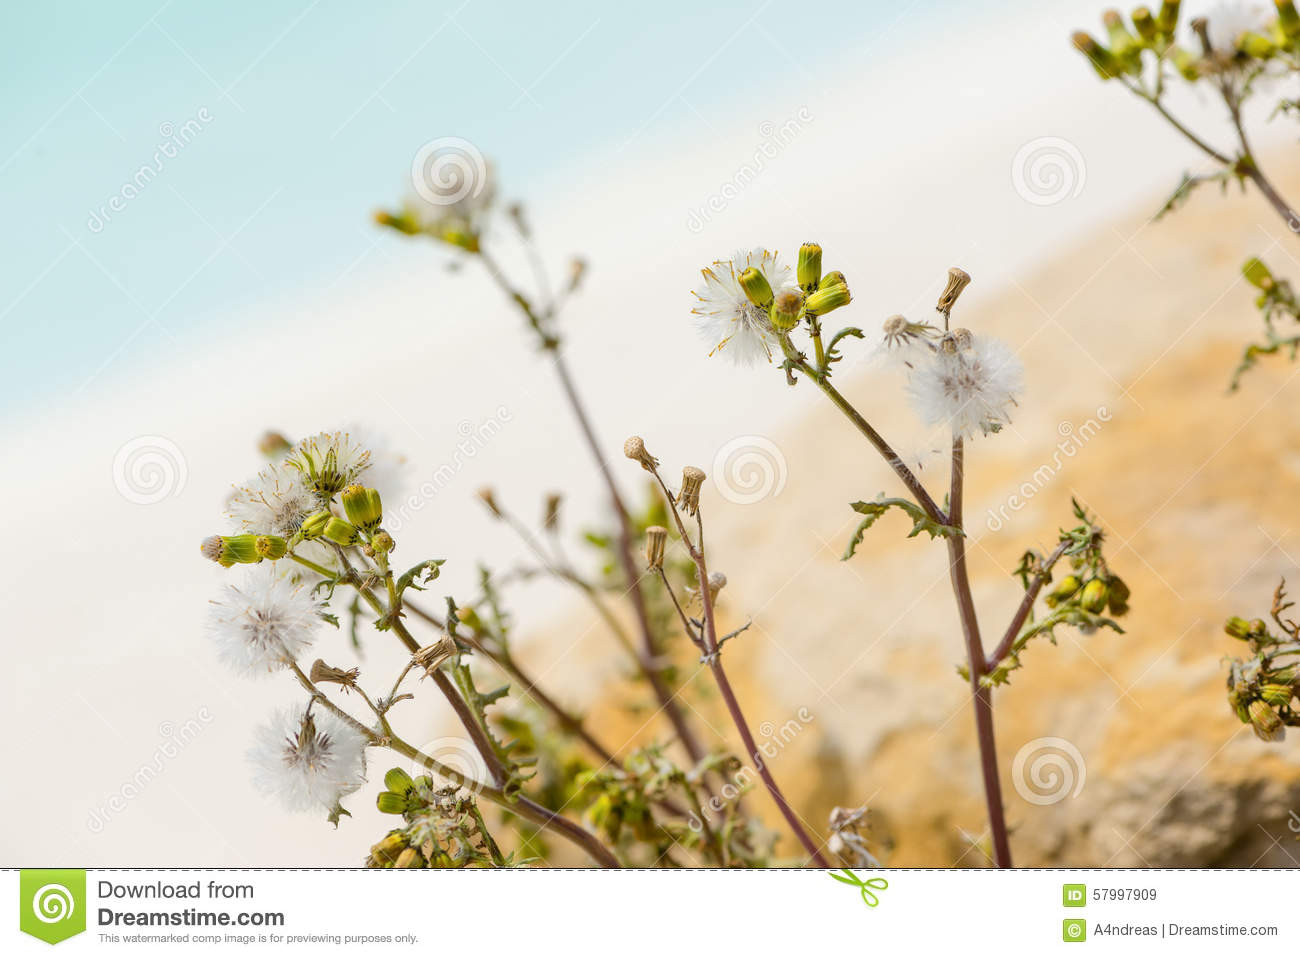 Asteraceae Or Compositae Flower Plant Stock Photo.